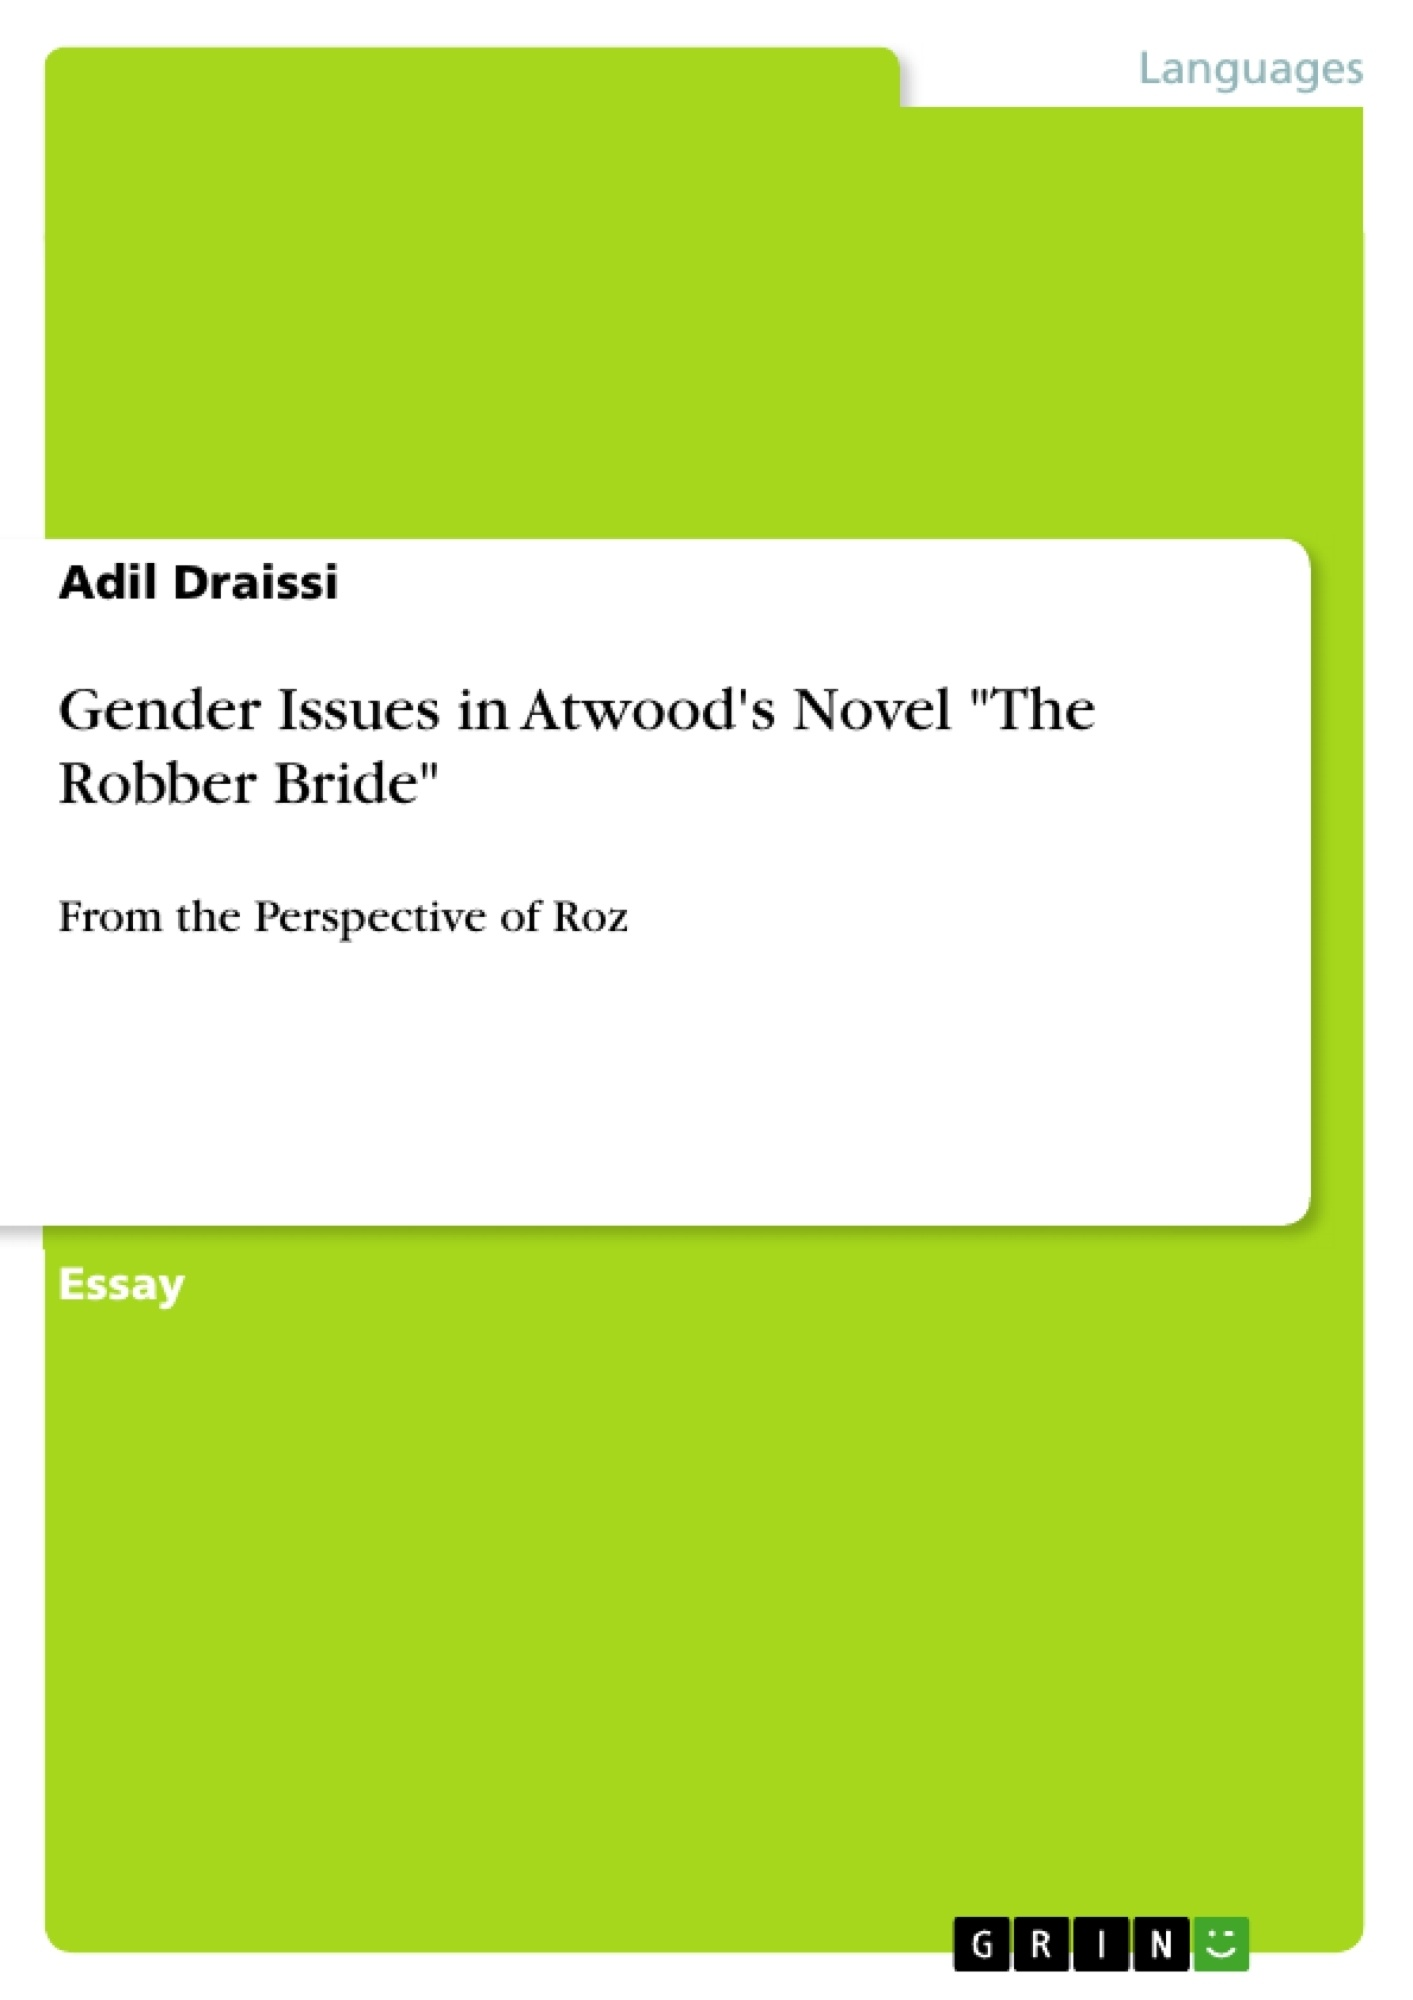 """Title: Gender Issues in Atwood's Novel """"The Robber Bride"""""""